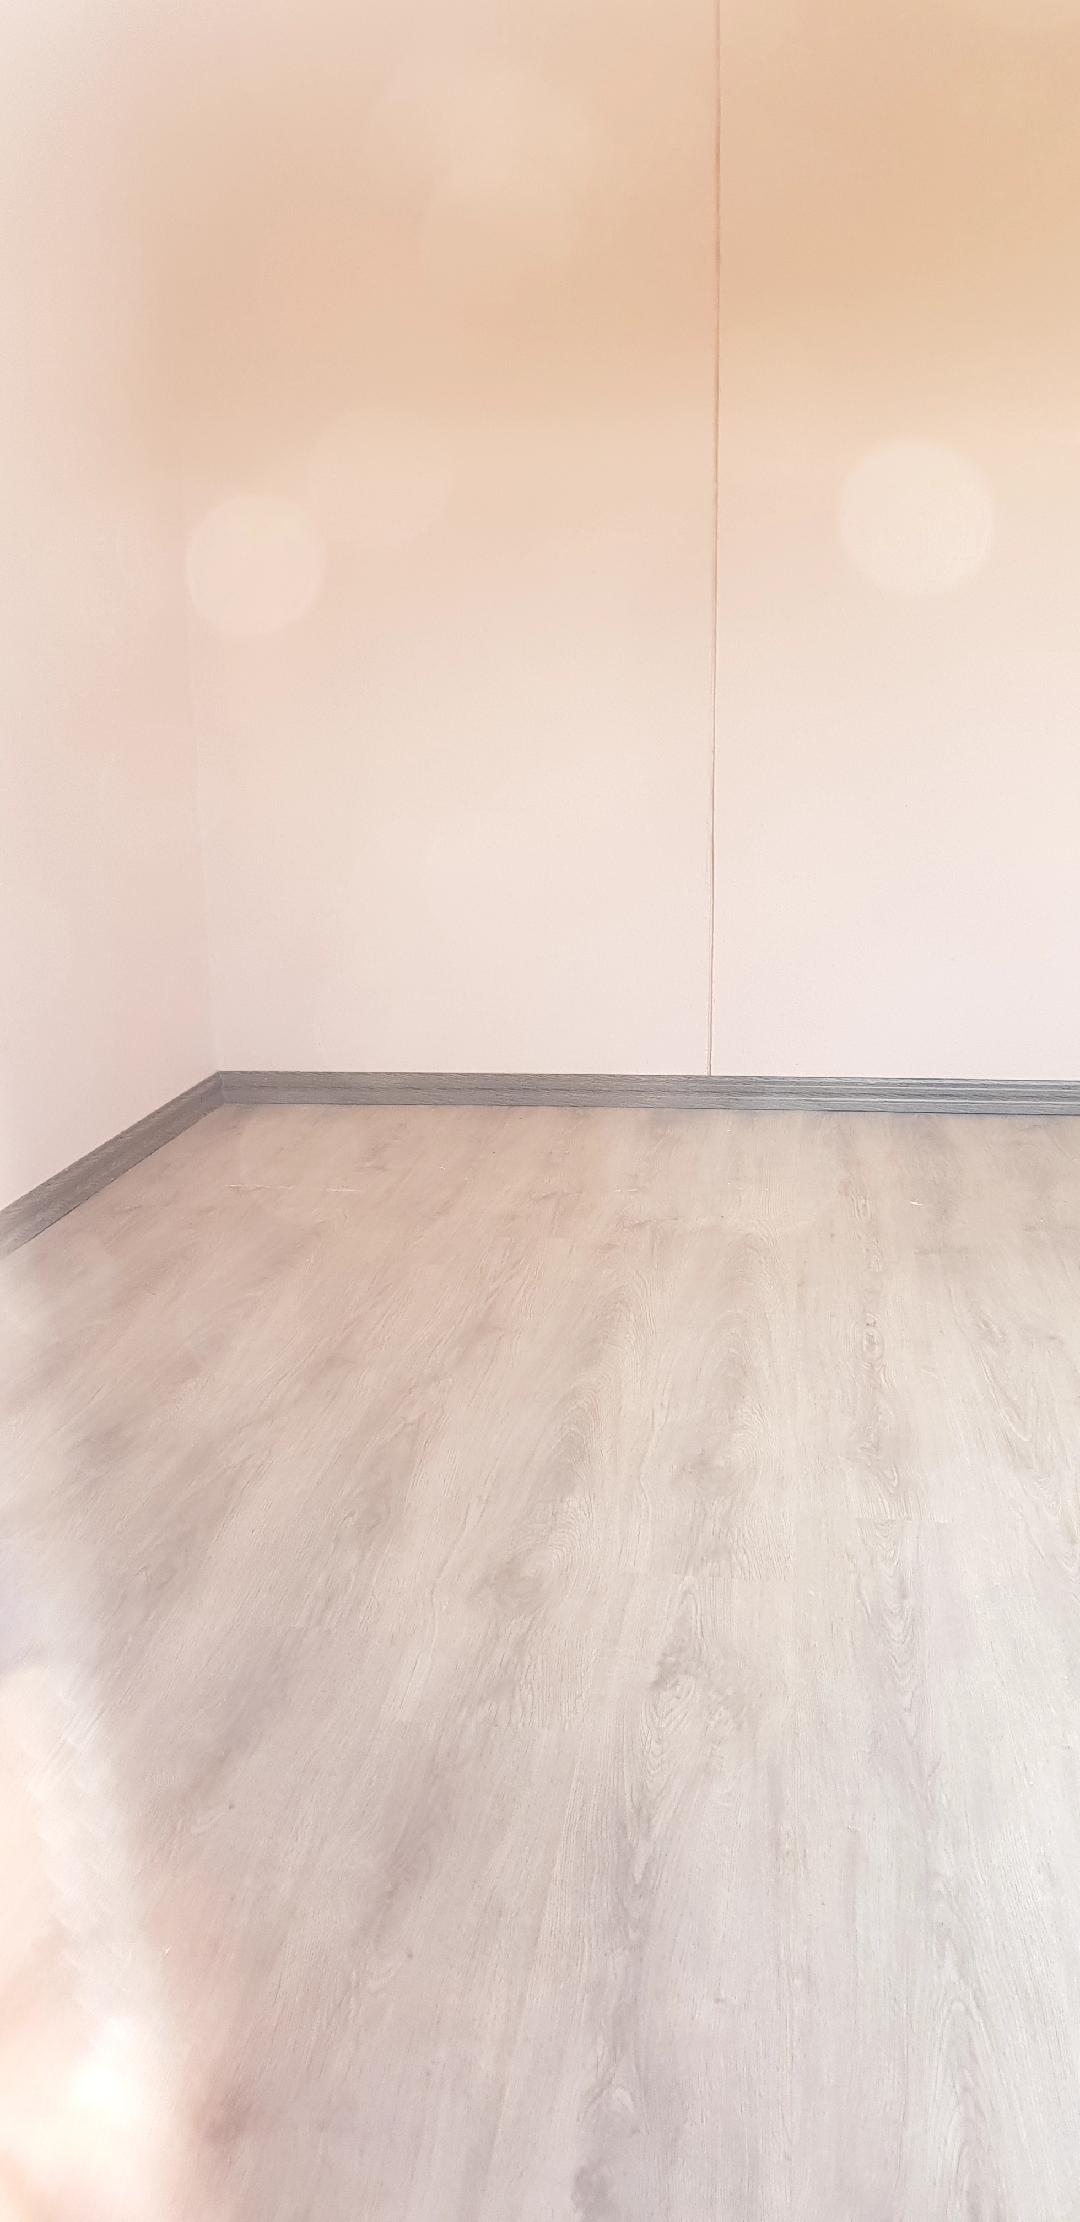 2 BEDROOMS HOUSE IN THE ORCHARDS PTA NORTH